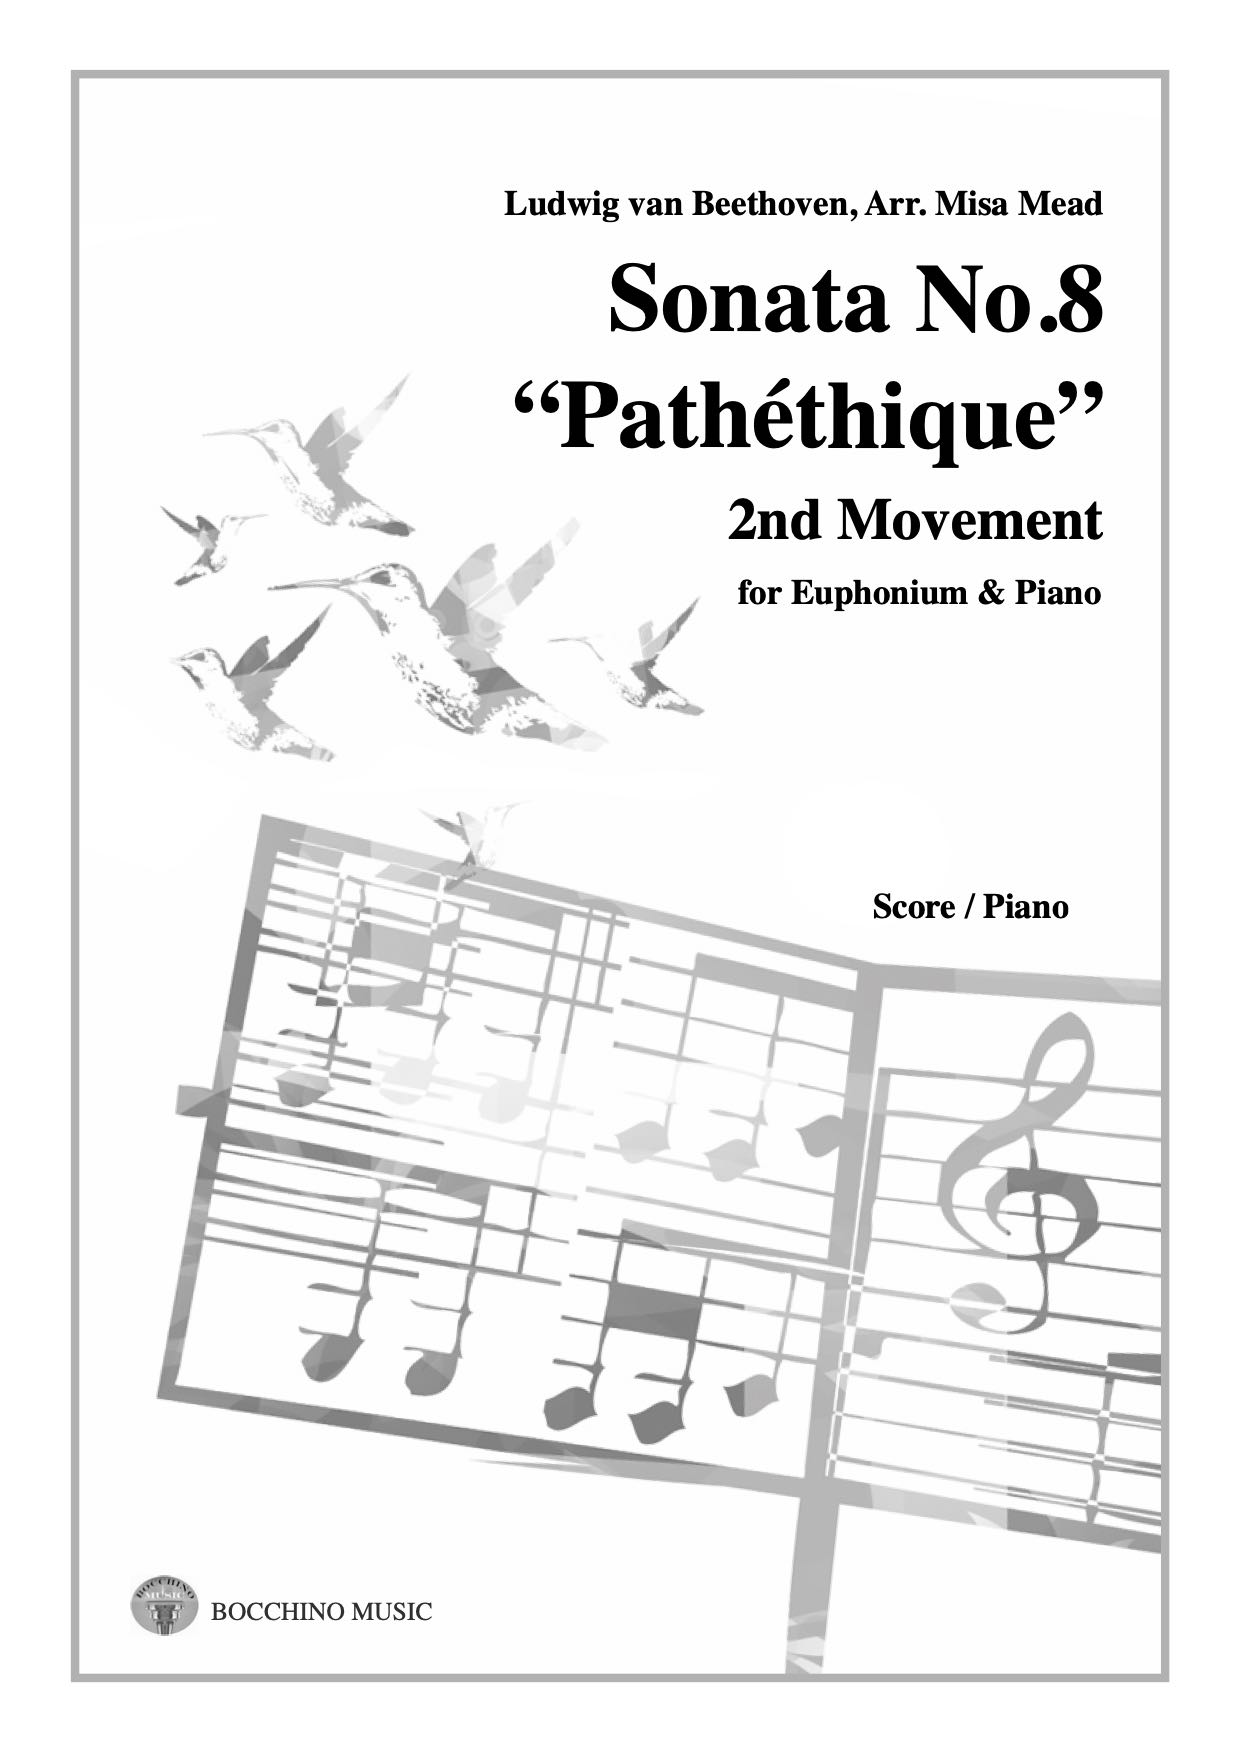 Digital download - Sonata No.8 Pathethique 2nd Mov. - Beethoven Arr. Misa Mead - Euphonium and Piano